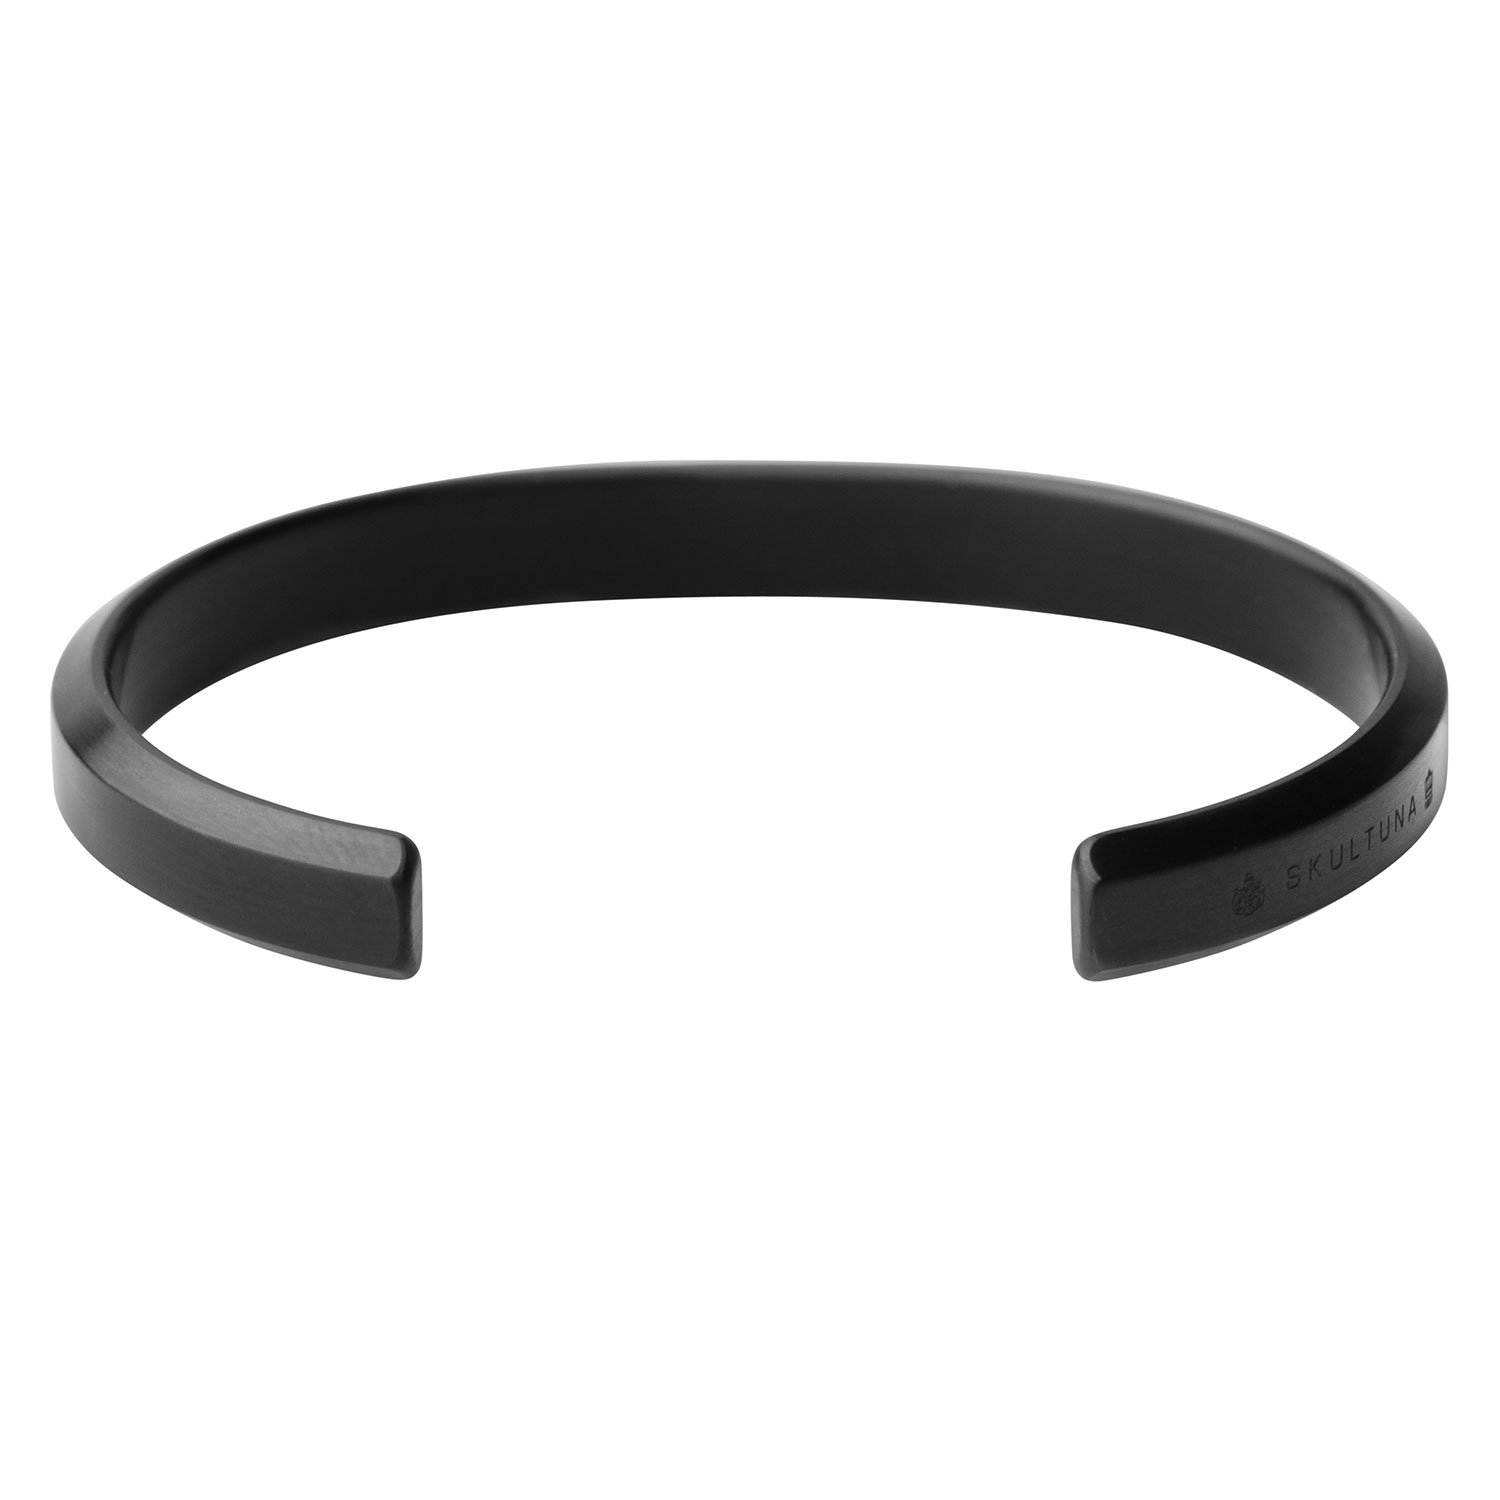 Icon Armband Matte Black Titanium Look, 54 mm